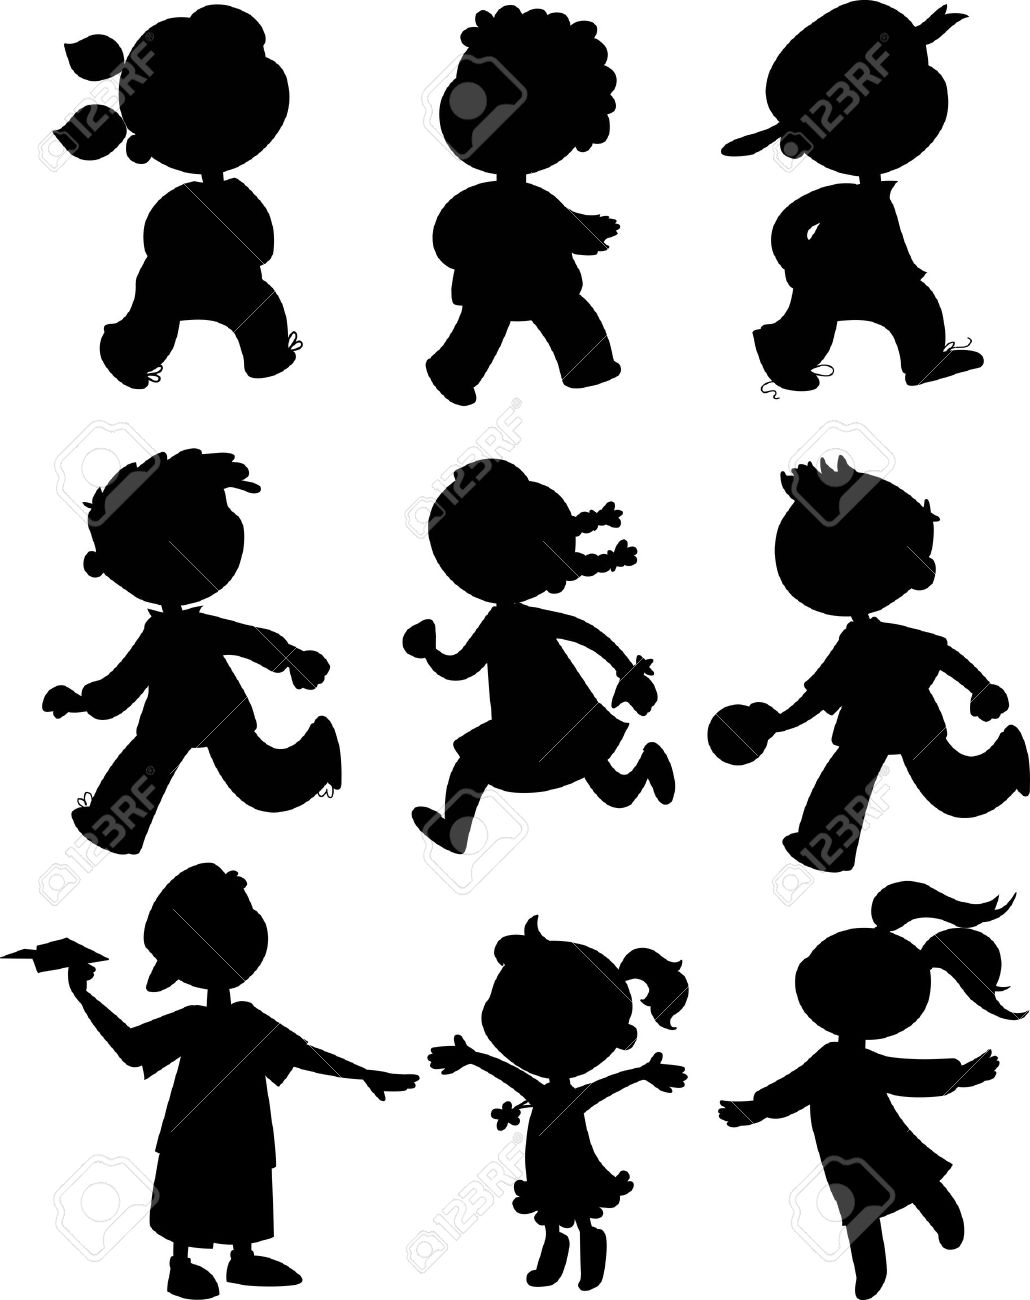 Children Black Silhouettes Of Boy And Girls Walking, Running.